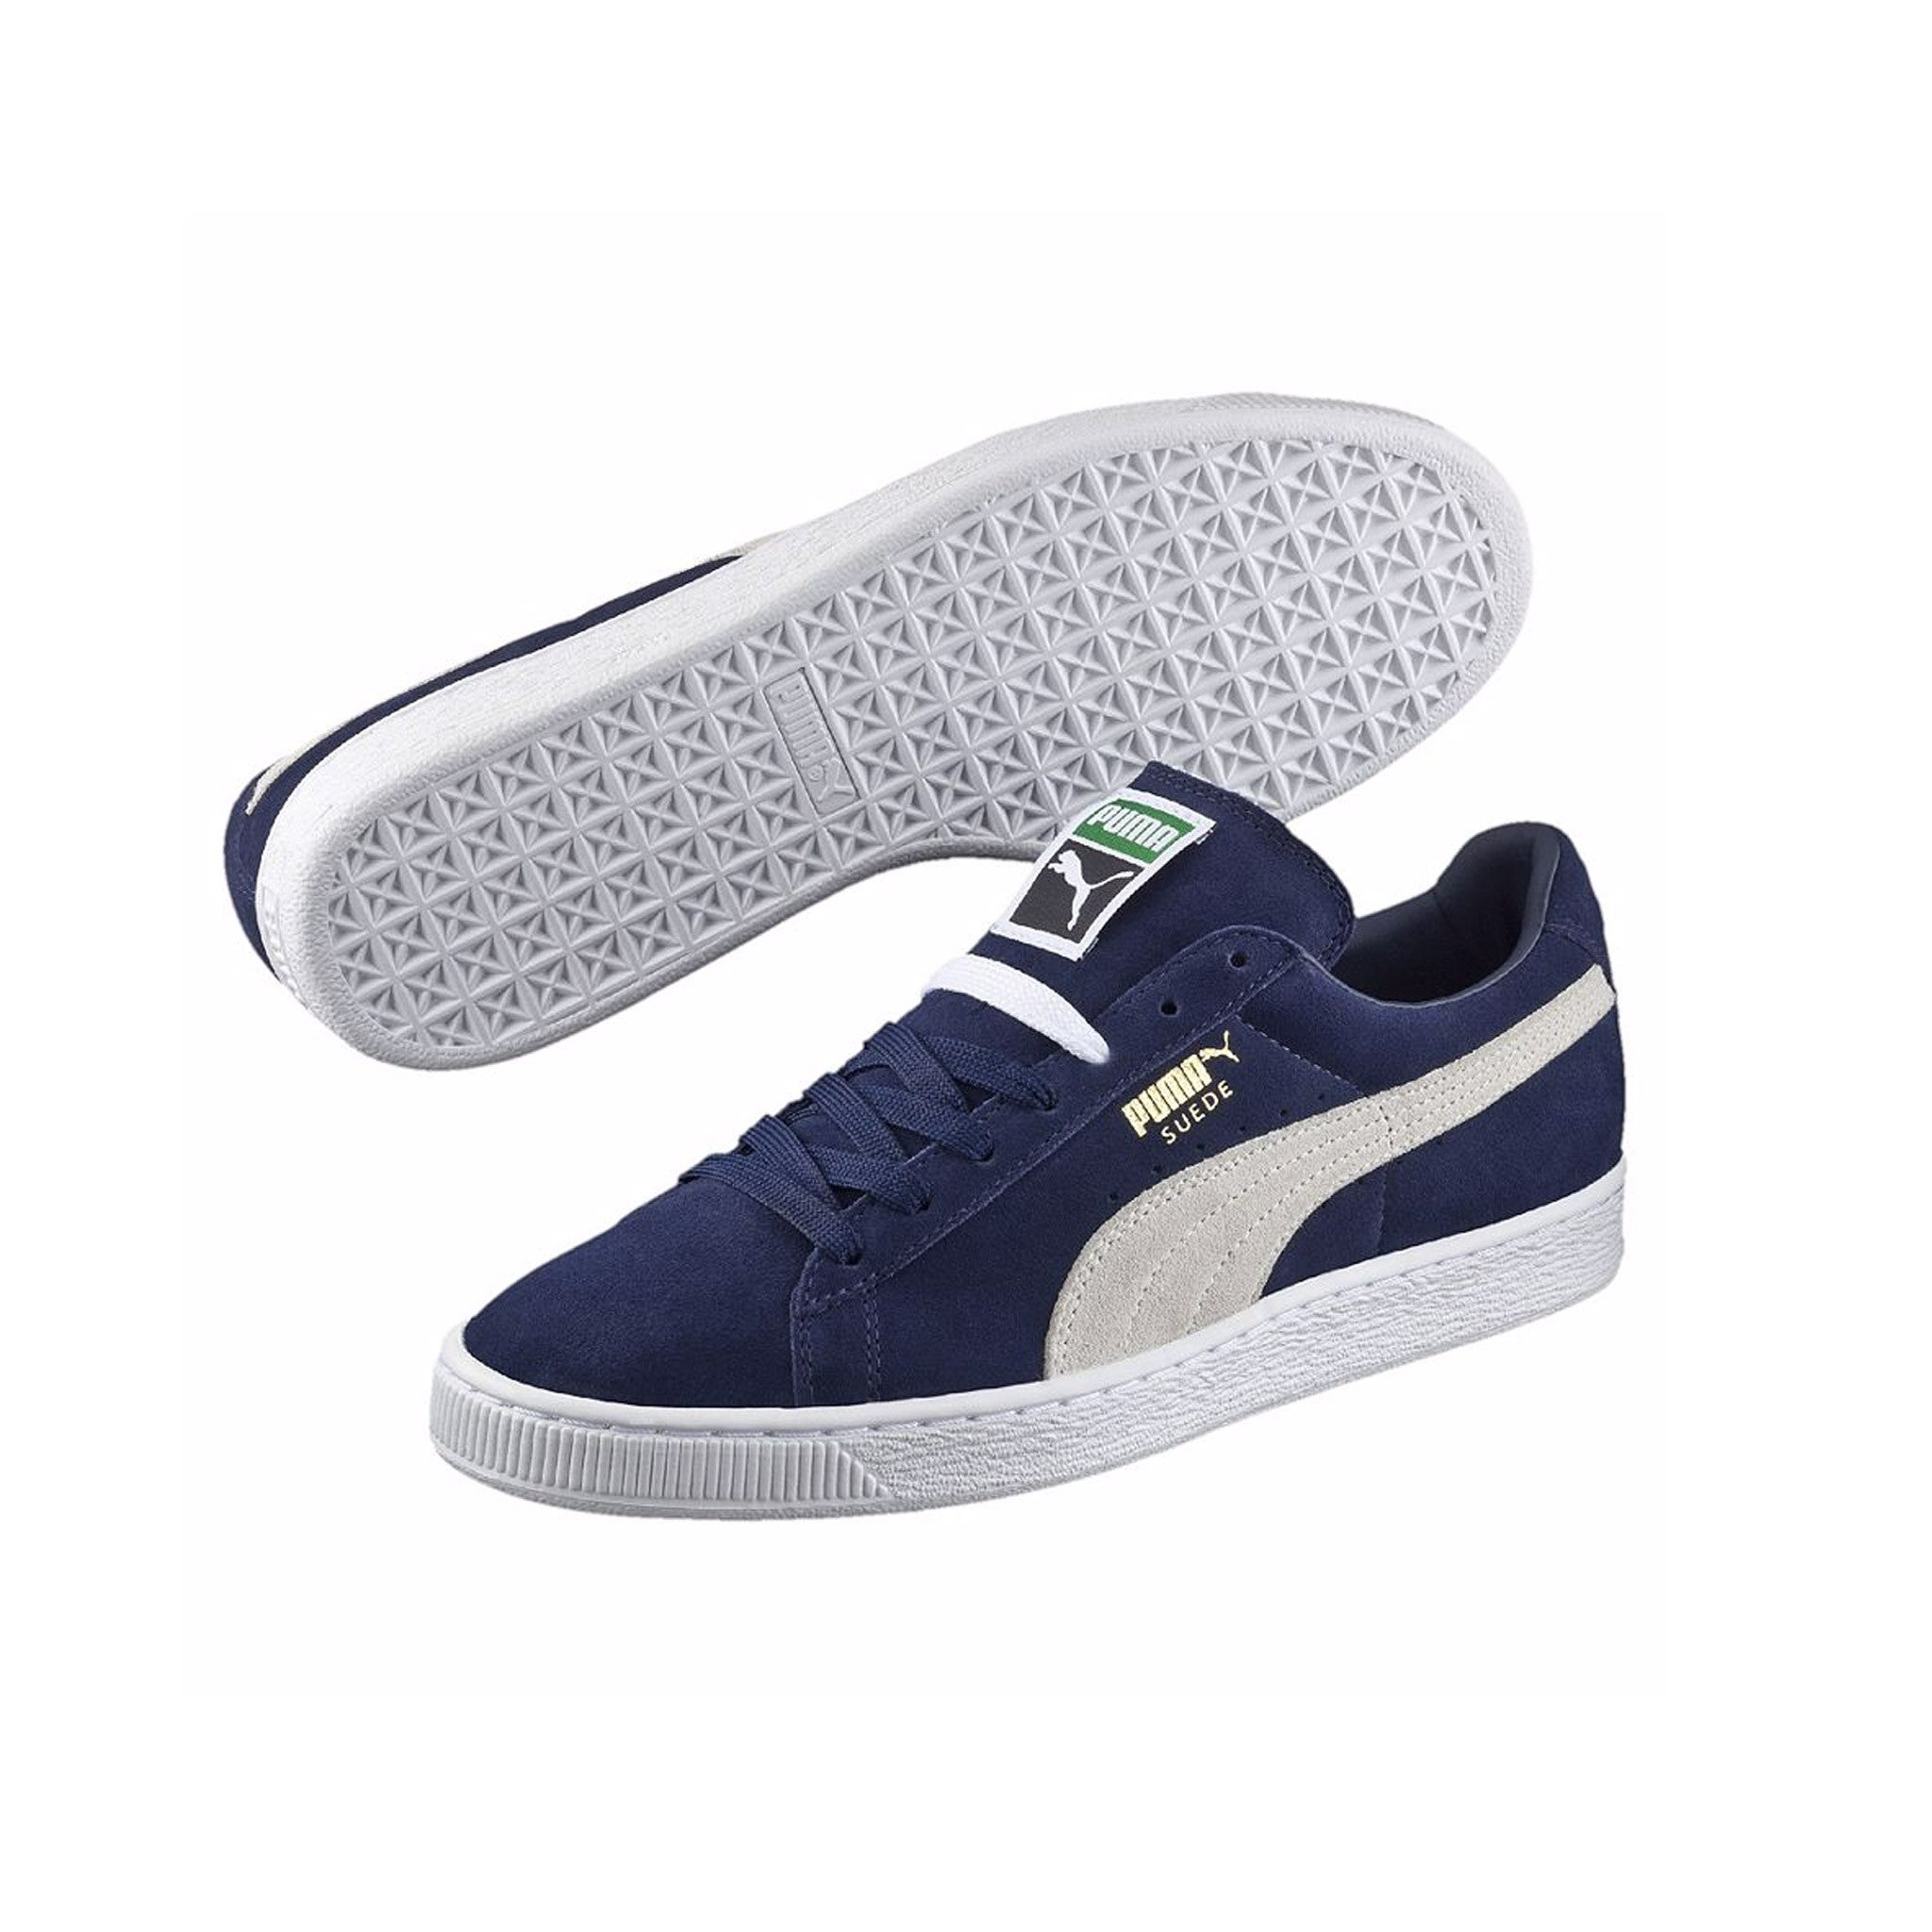 Suede Classic Puma Sneakers Peacoat Pair View